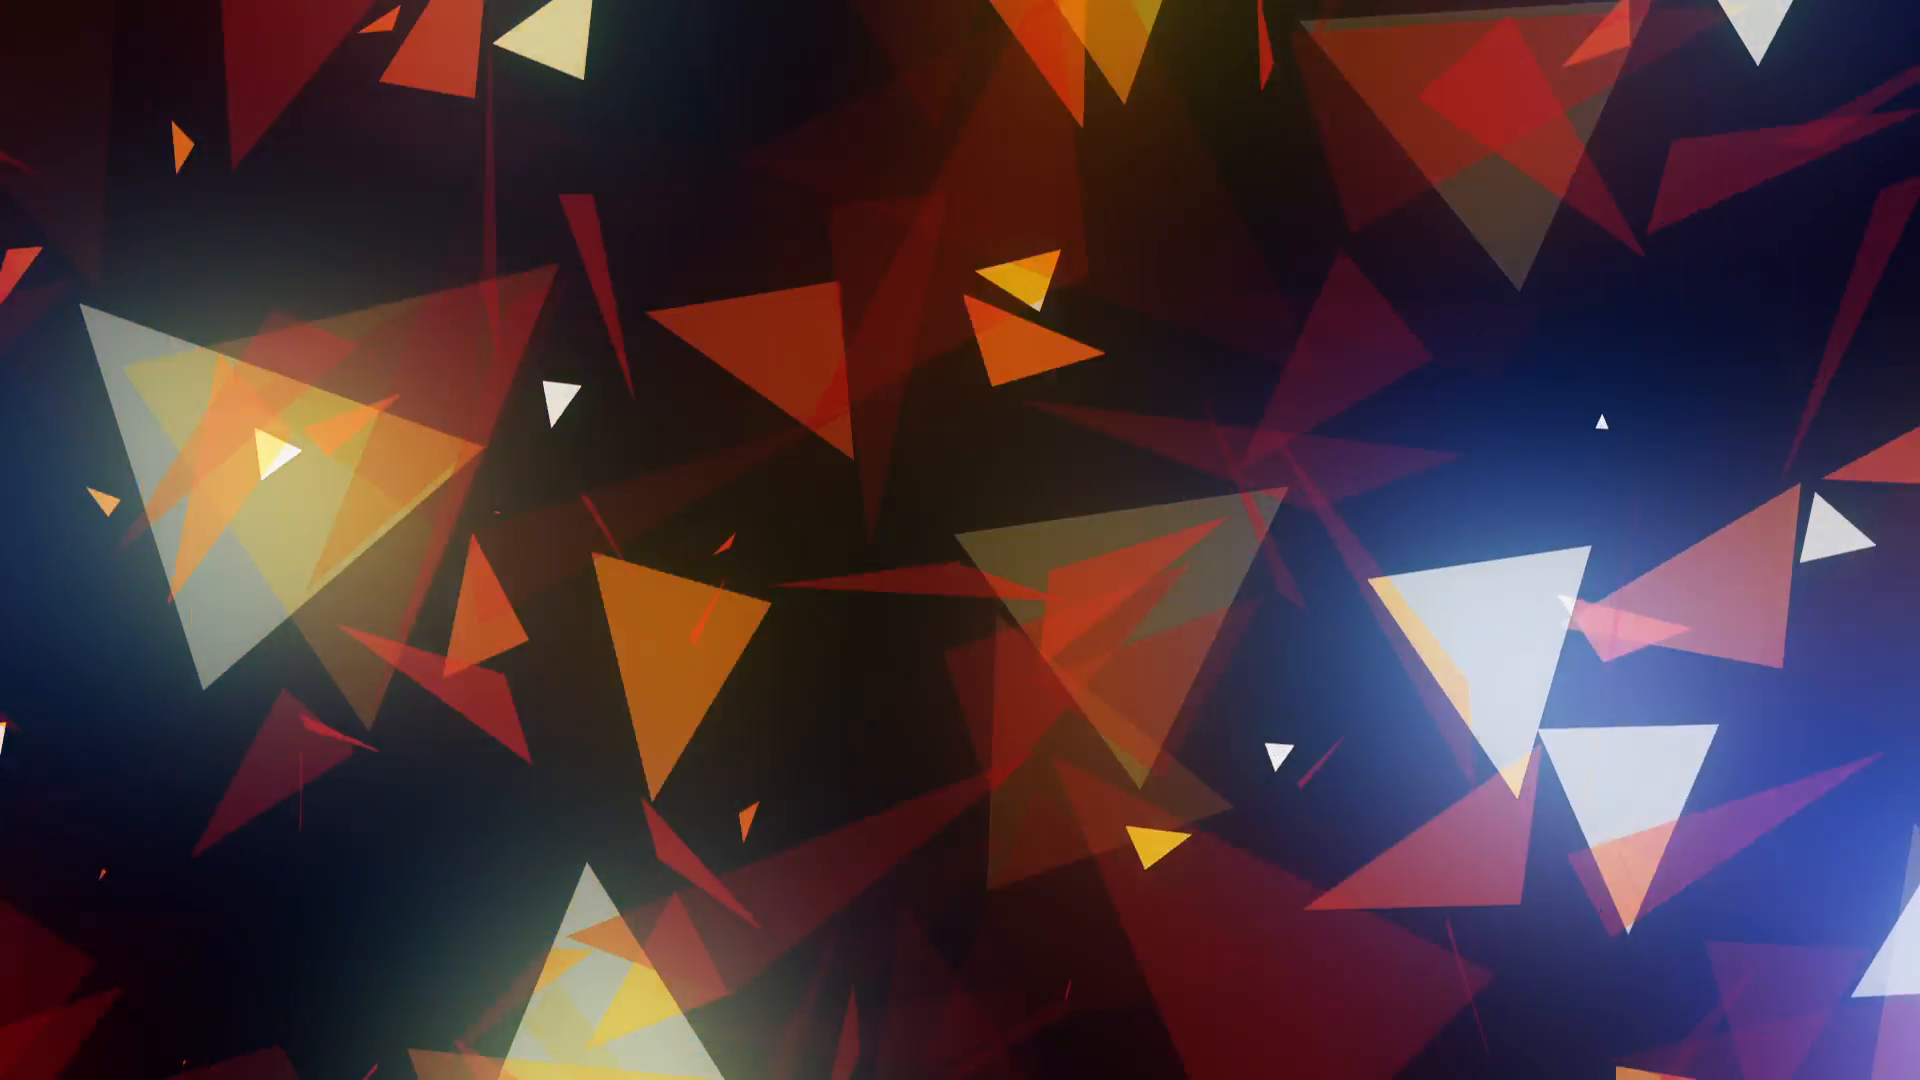 glowing-multicolored-spinning-triangles-psychedelic-background-vj